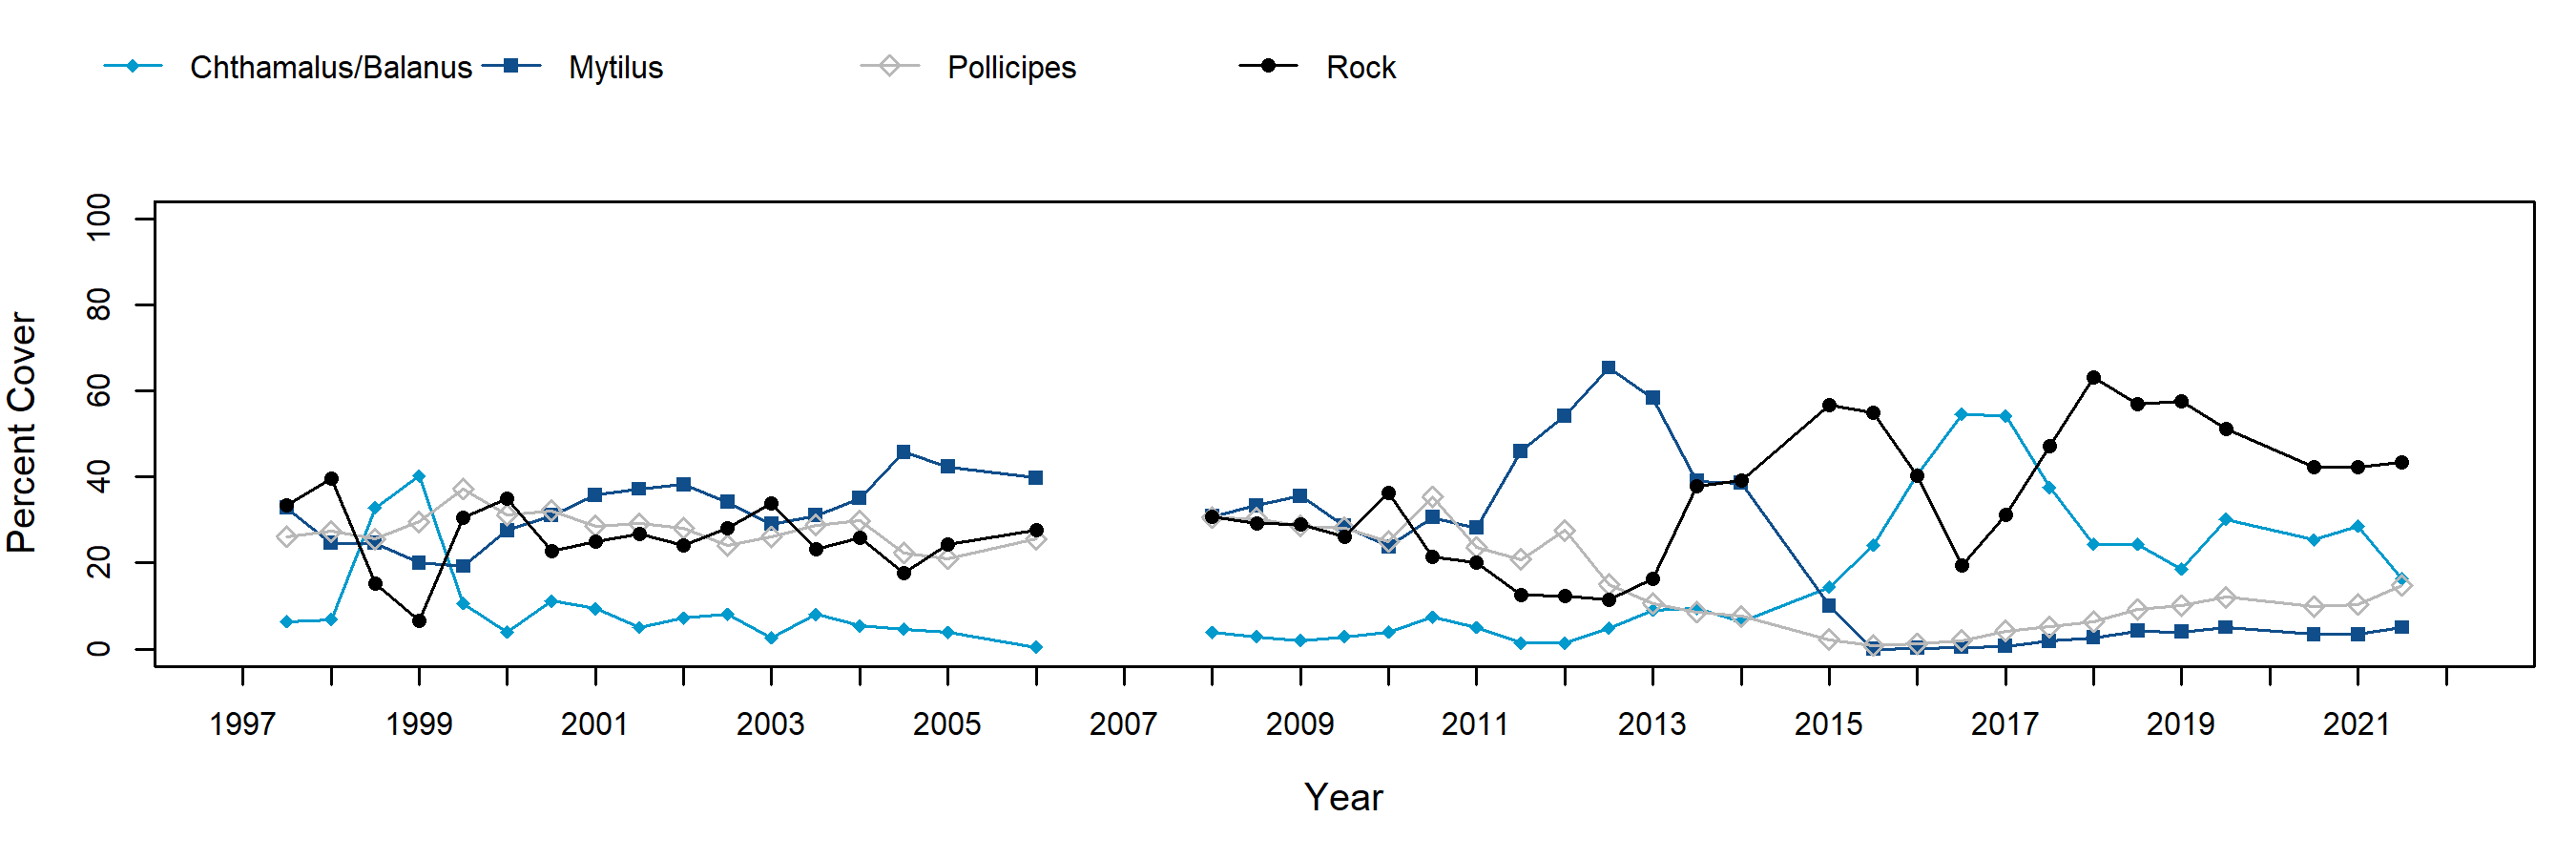 Scripps Reef Pollicipes trend plot